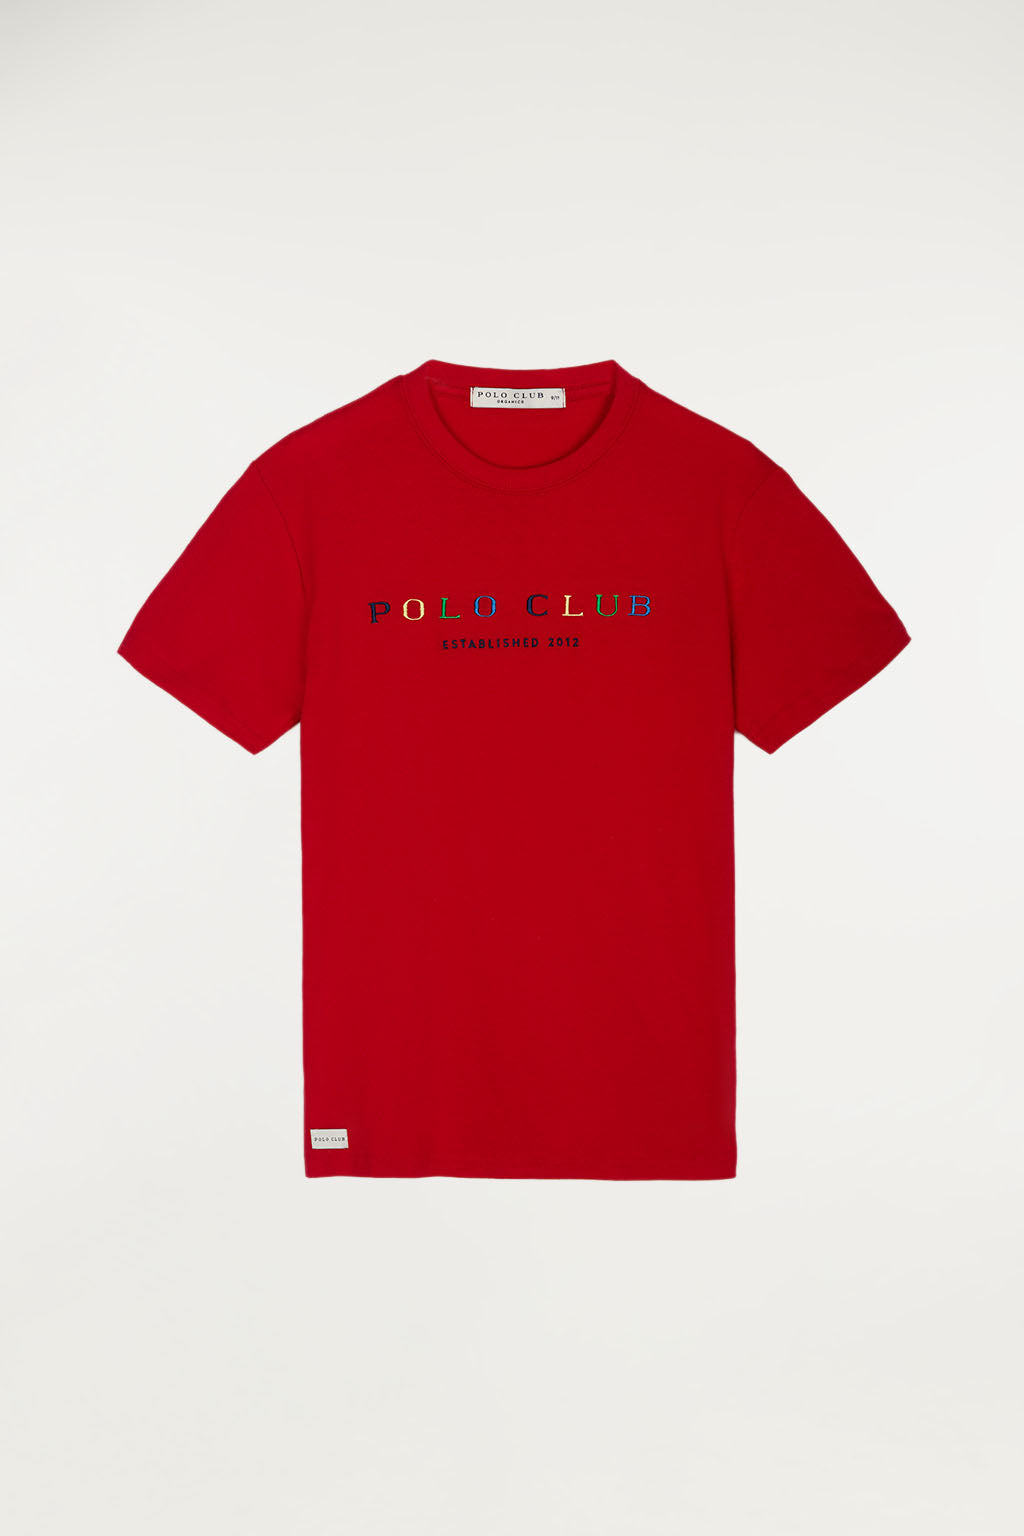 Camiseta orgánica kids roja con bordado multicolor